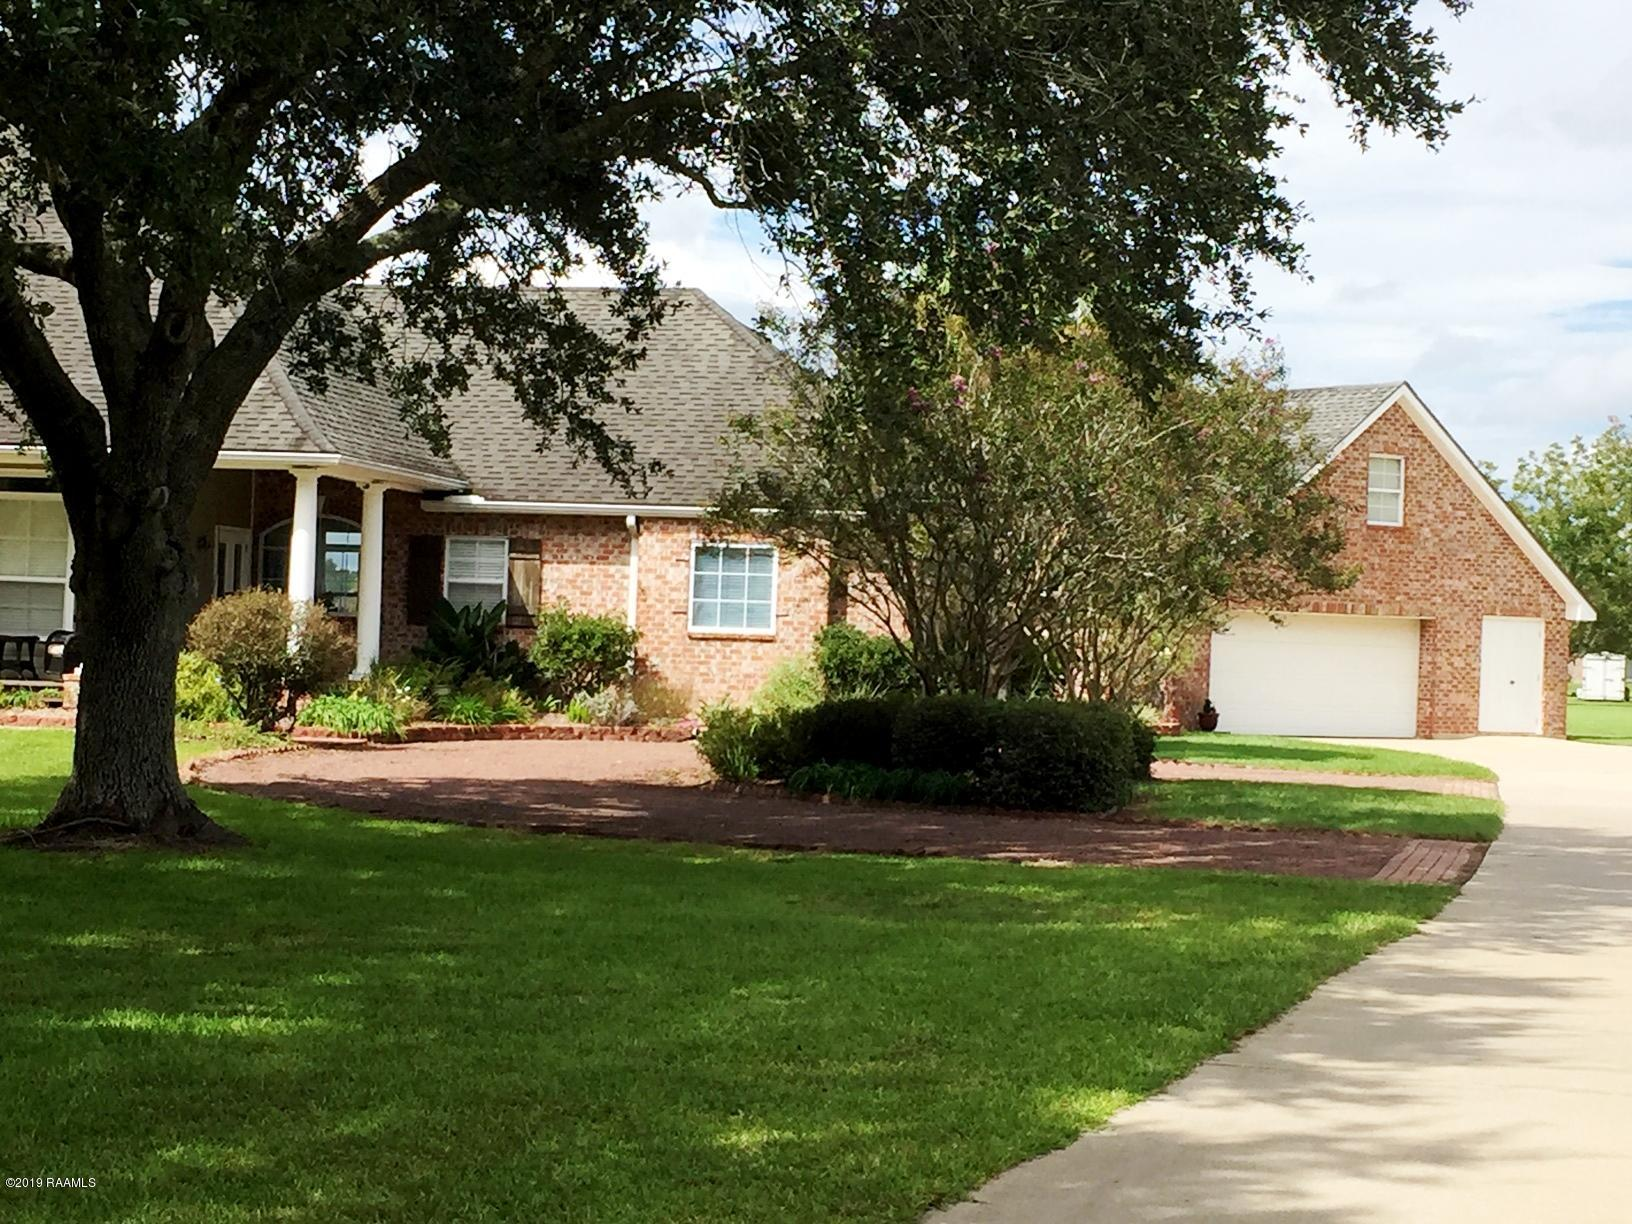 406 Copperfield Way, Youngsville, LA 70592 Photo #39